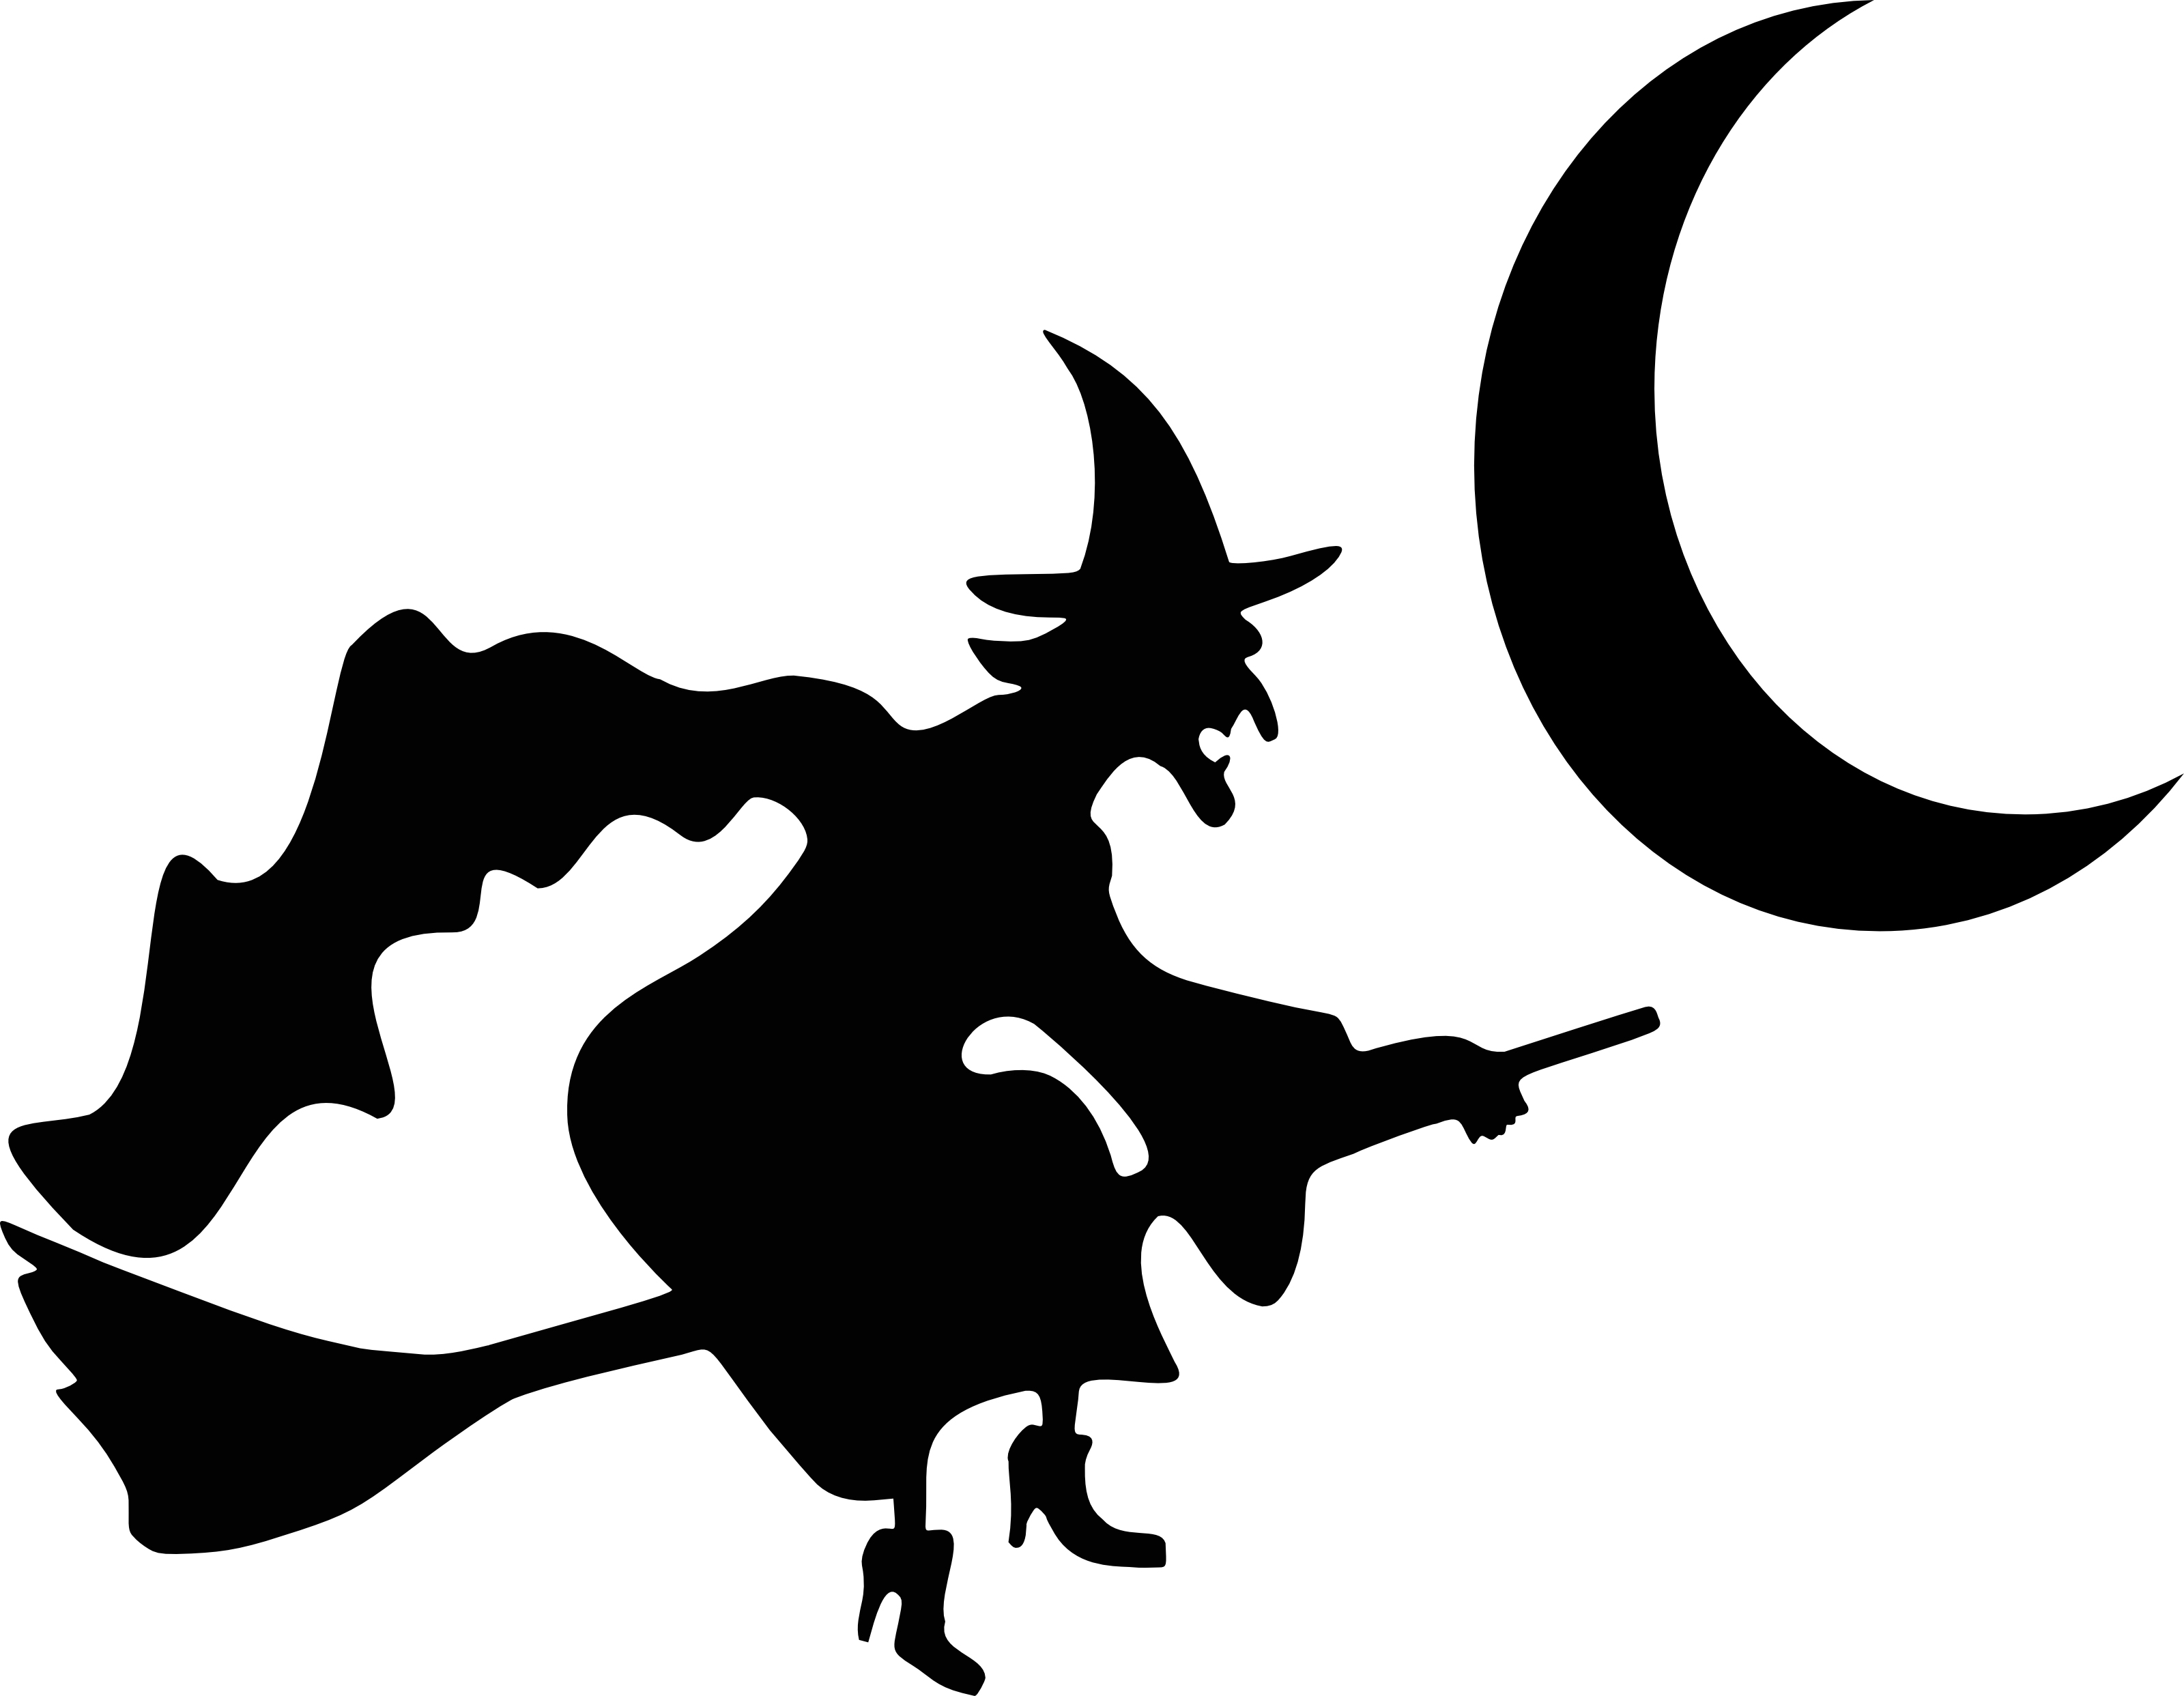 19 Halloween Silhouette Vector Images.